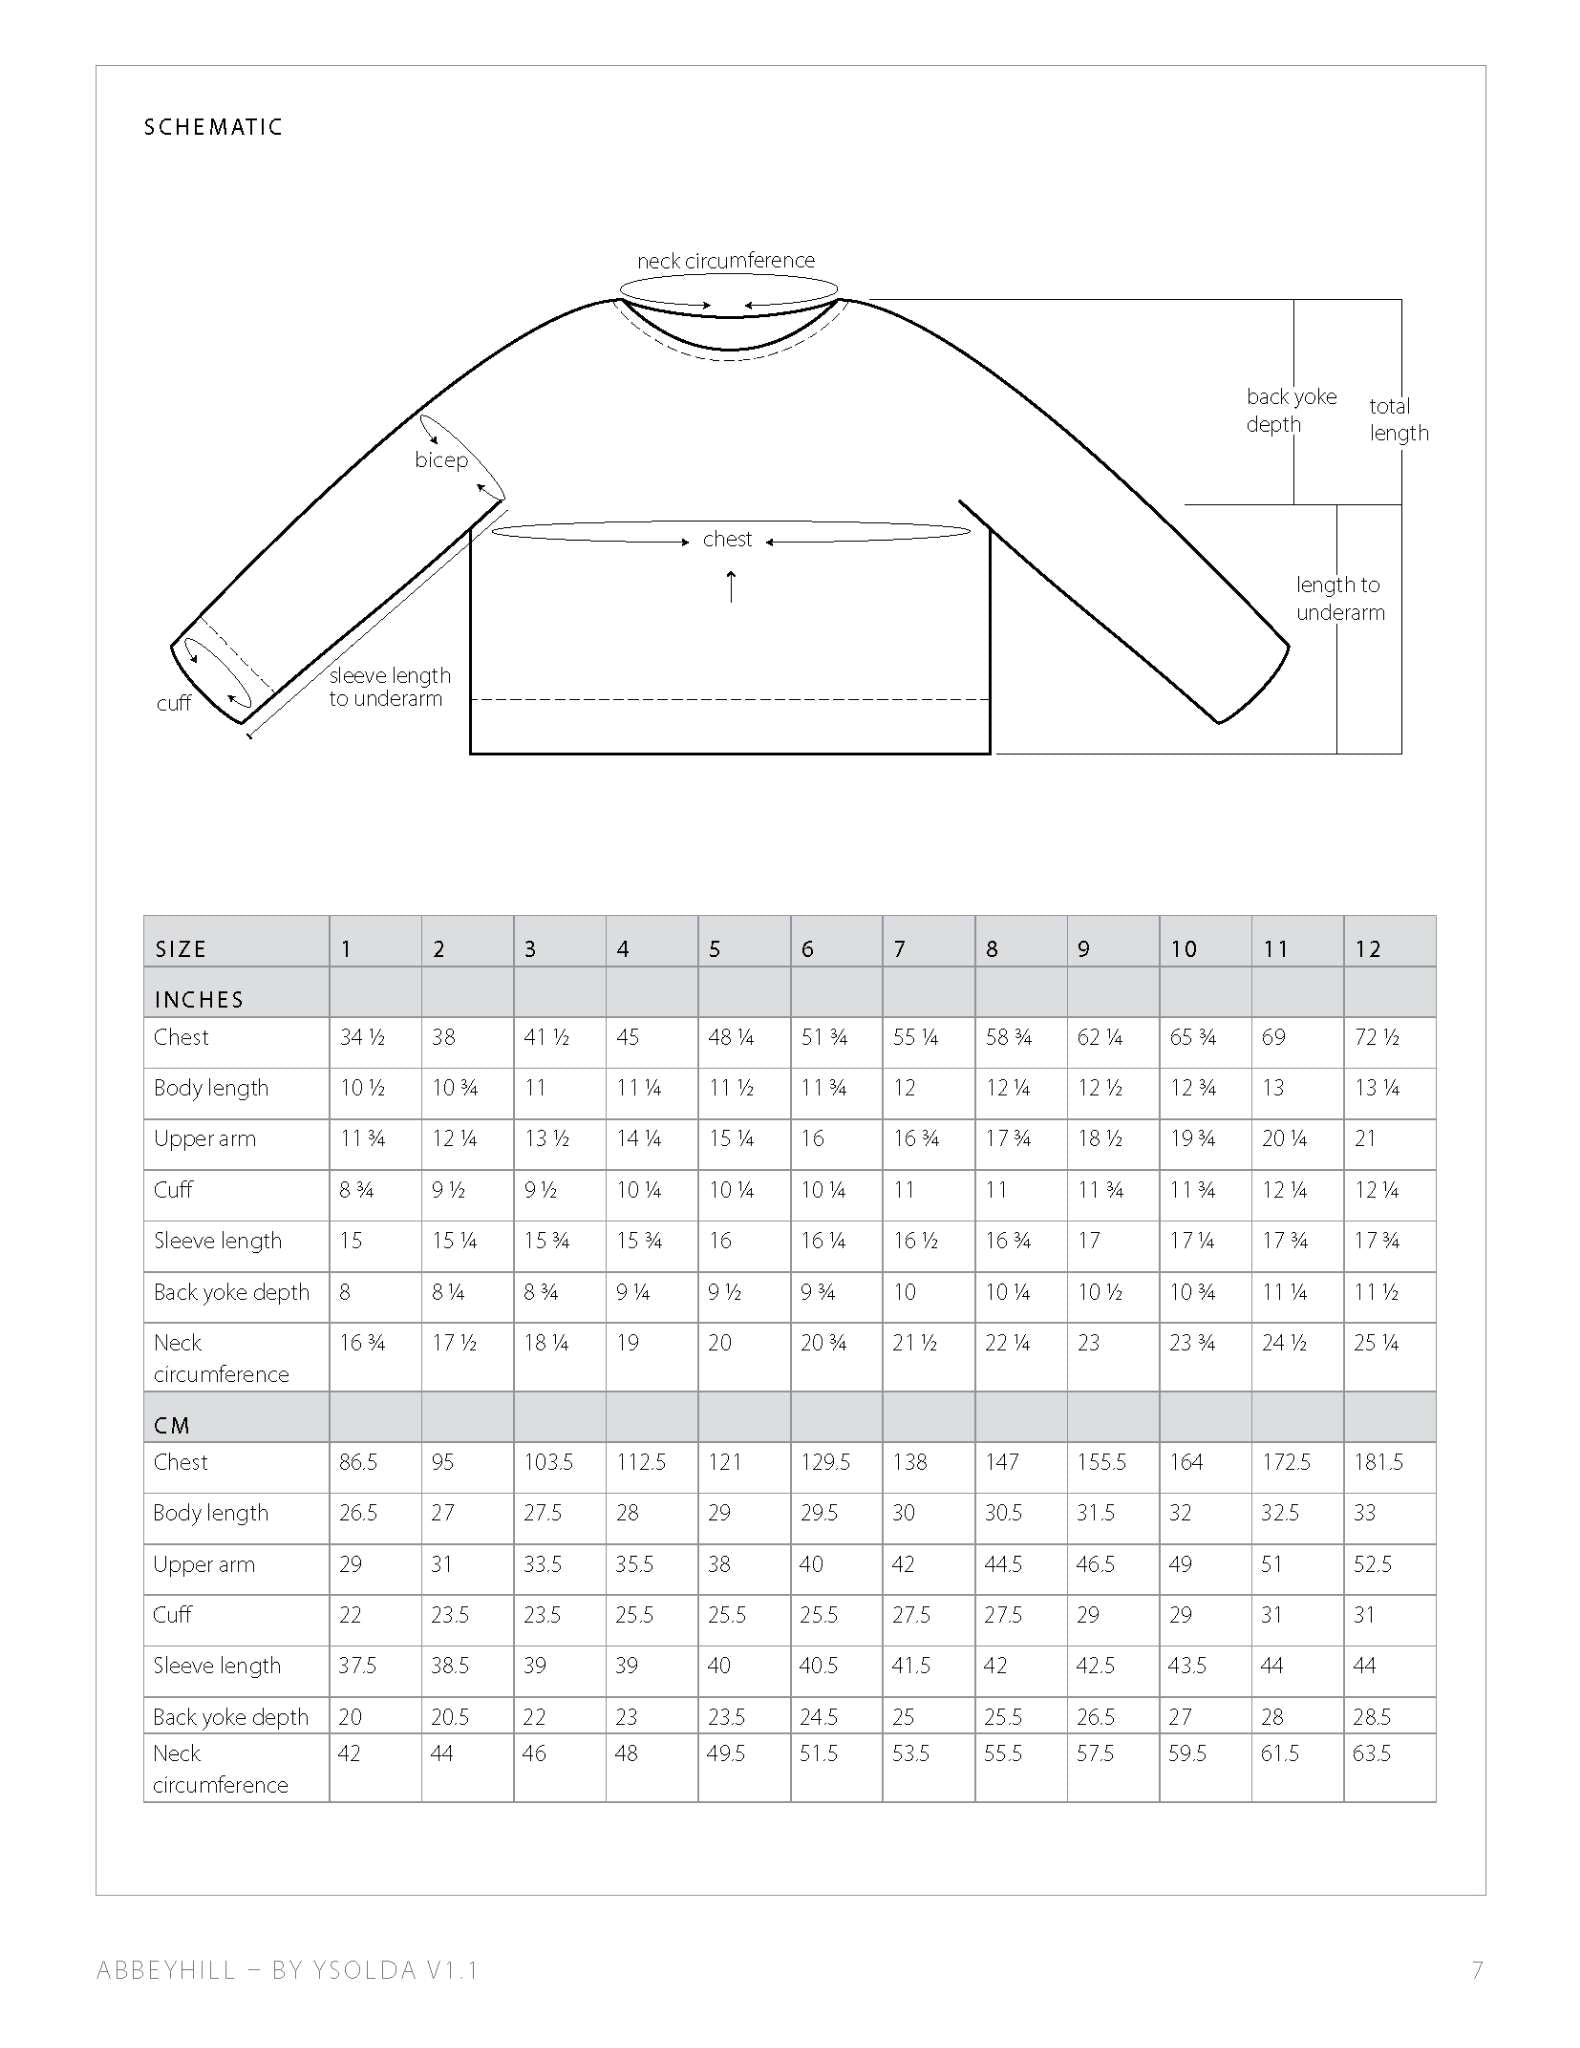 a screenshot of a sweater schematic, with arrows to show the measurement points taken, and a table of measurements for each size